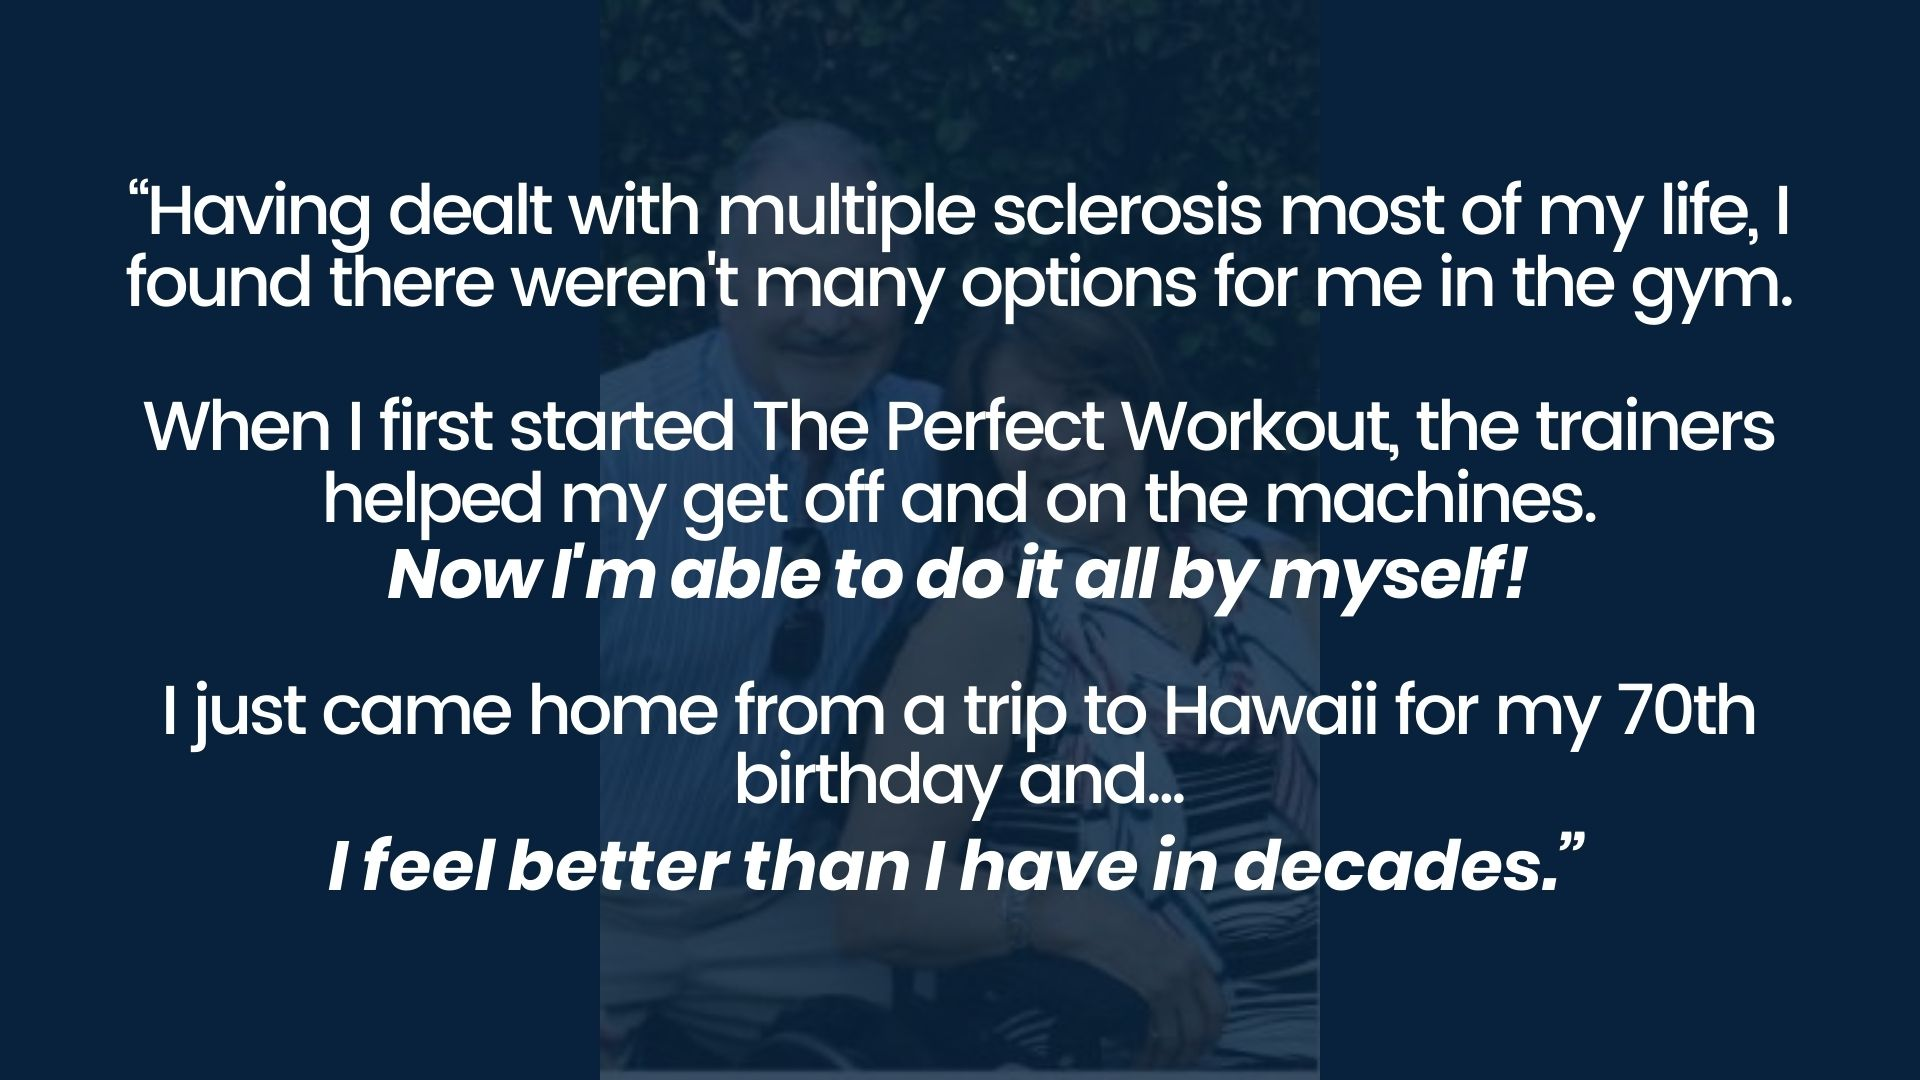 Multiple Sclerosis client gains strength and feels better